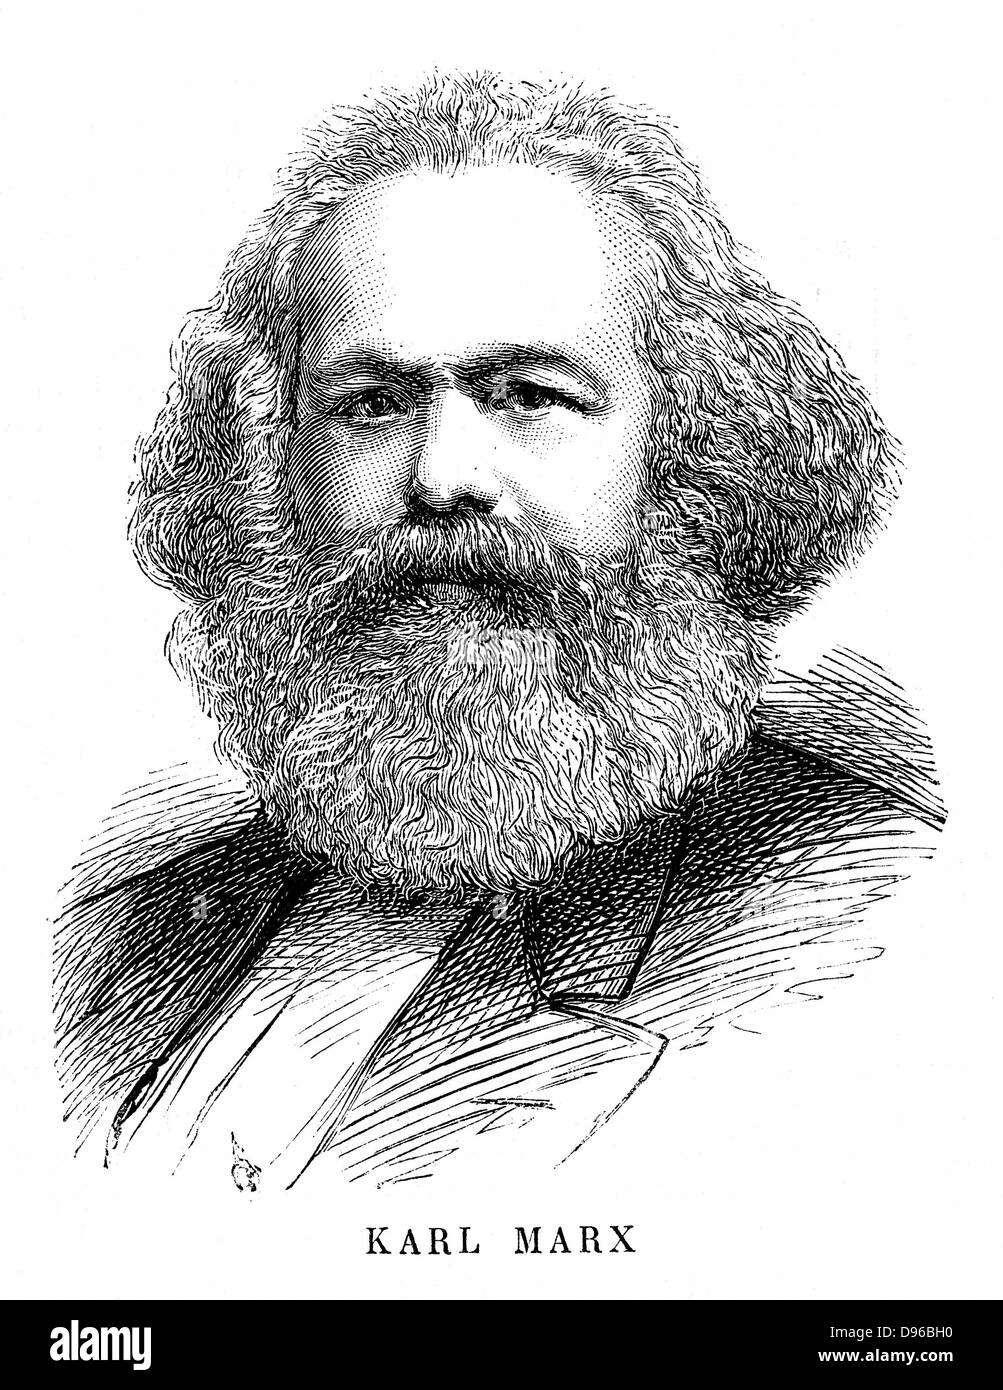 Karl Marx (1818-1883). Father of modern Communism. German political, social and economic theorist. Engraving - Stock Image